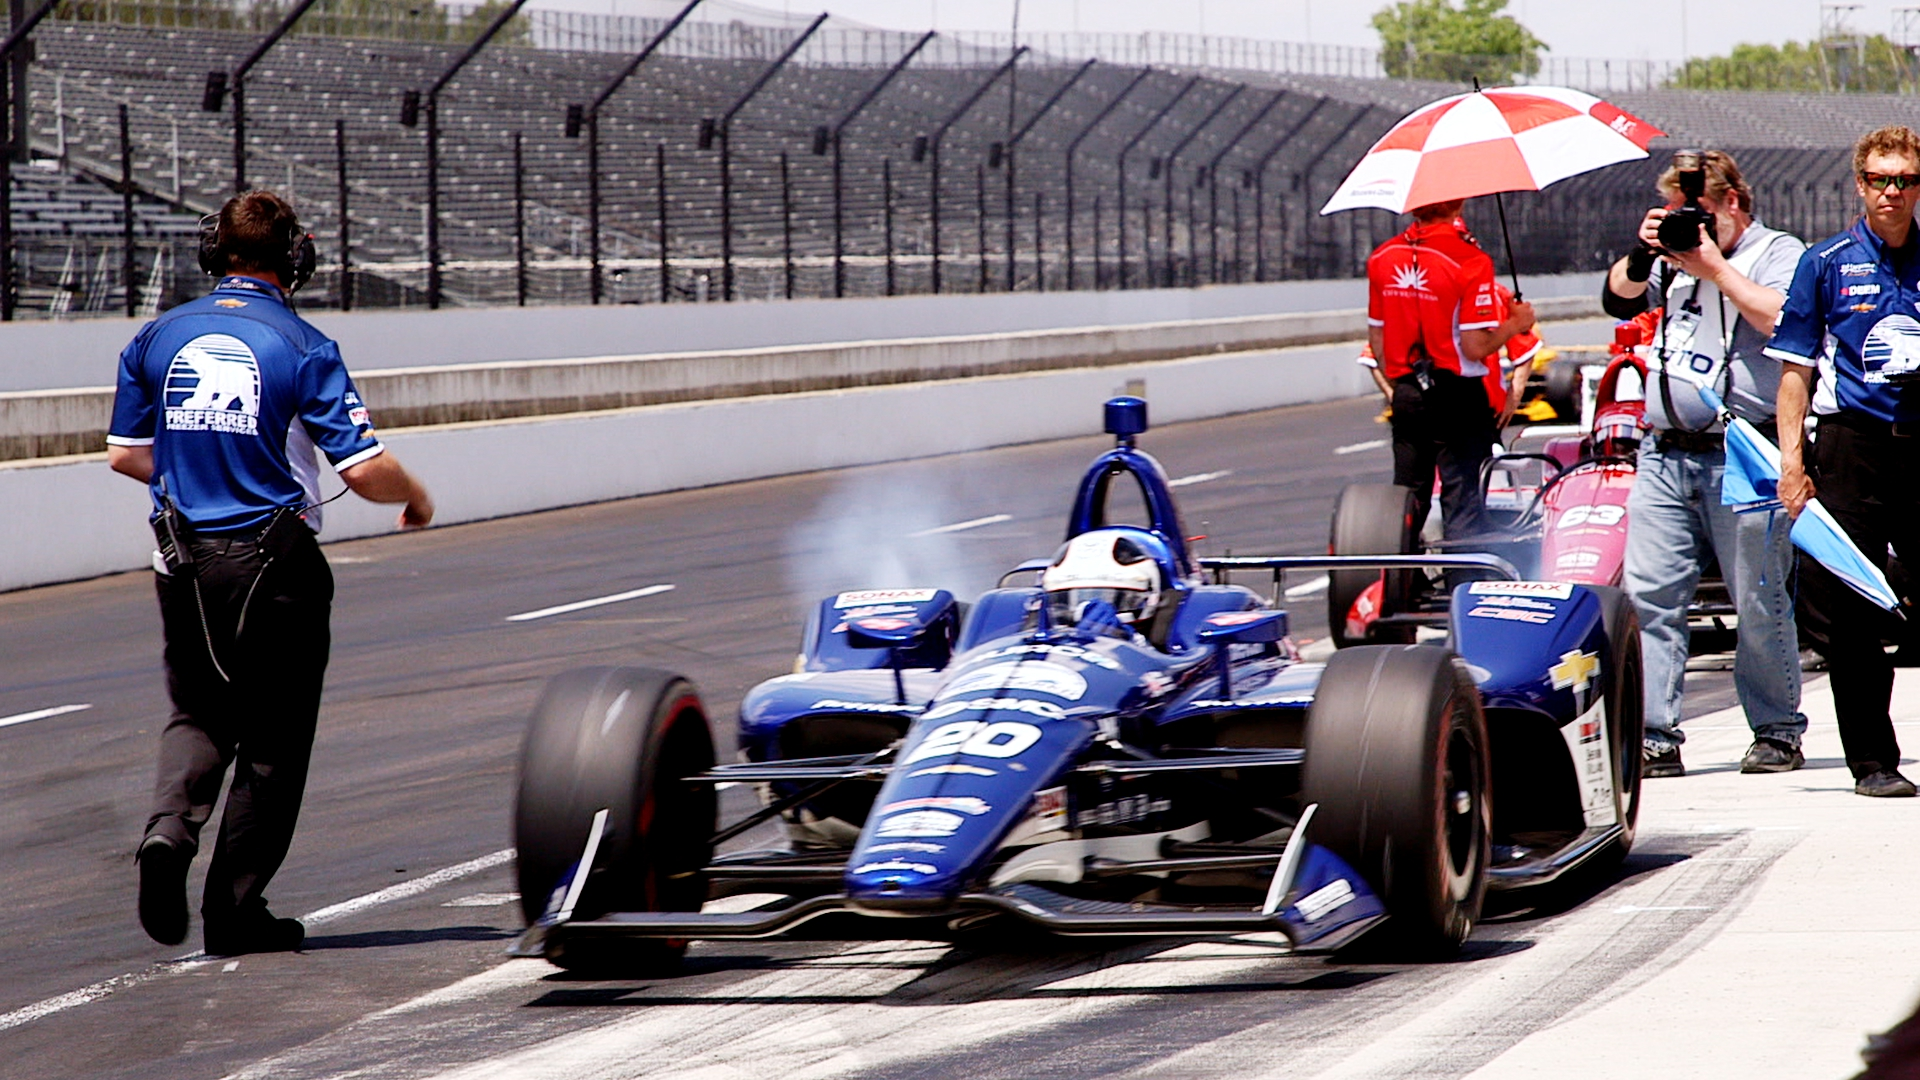 image4 Go To Team St. Louis Crew | Forbes at the Indianapolis 500